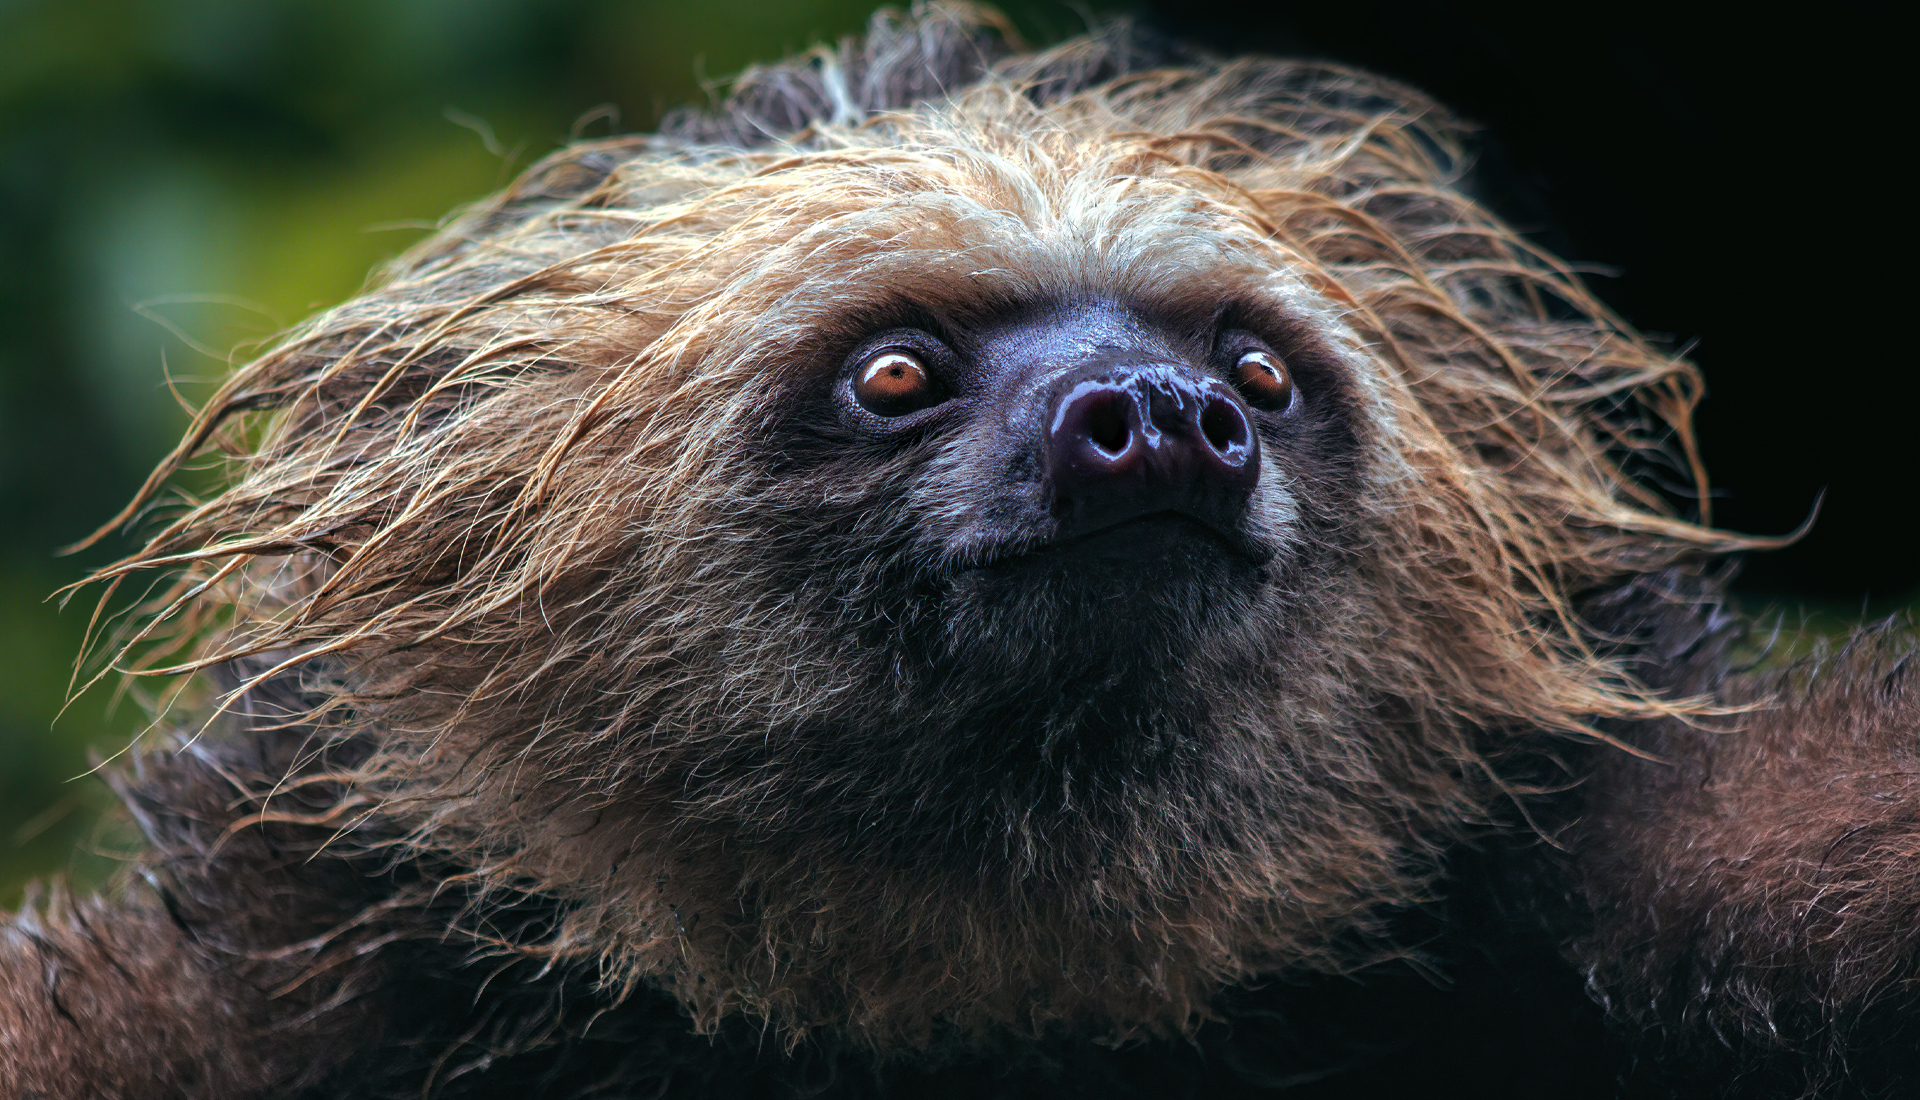 Two-Toed Sloth - Choloepus hoffmanni